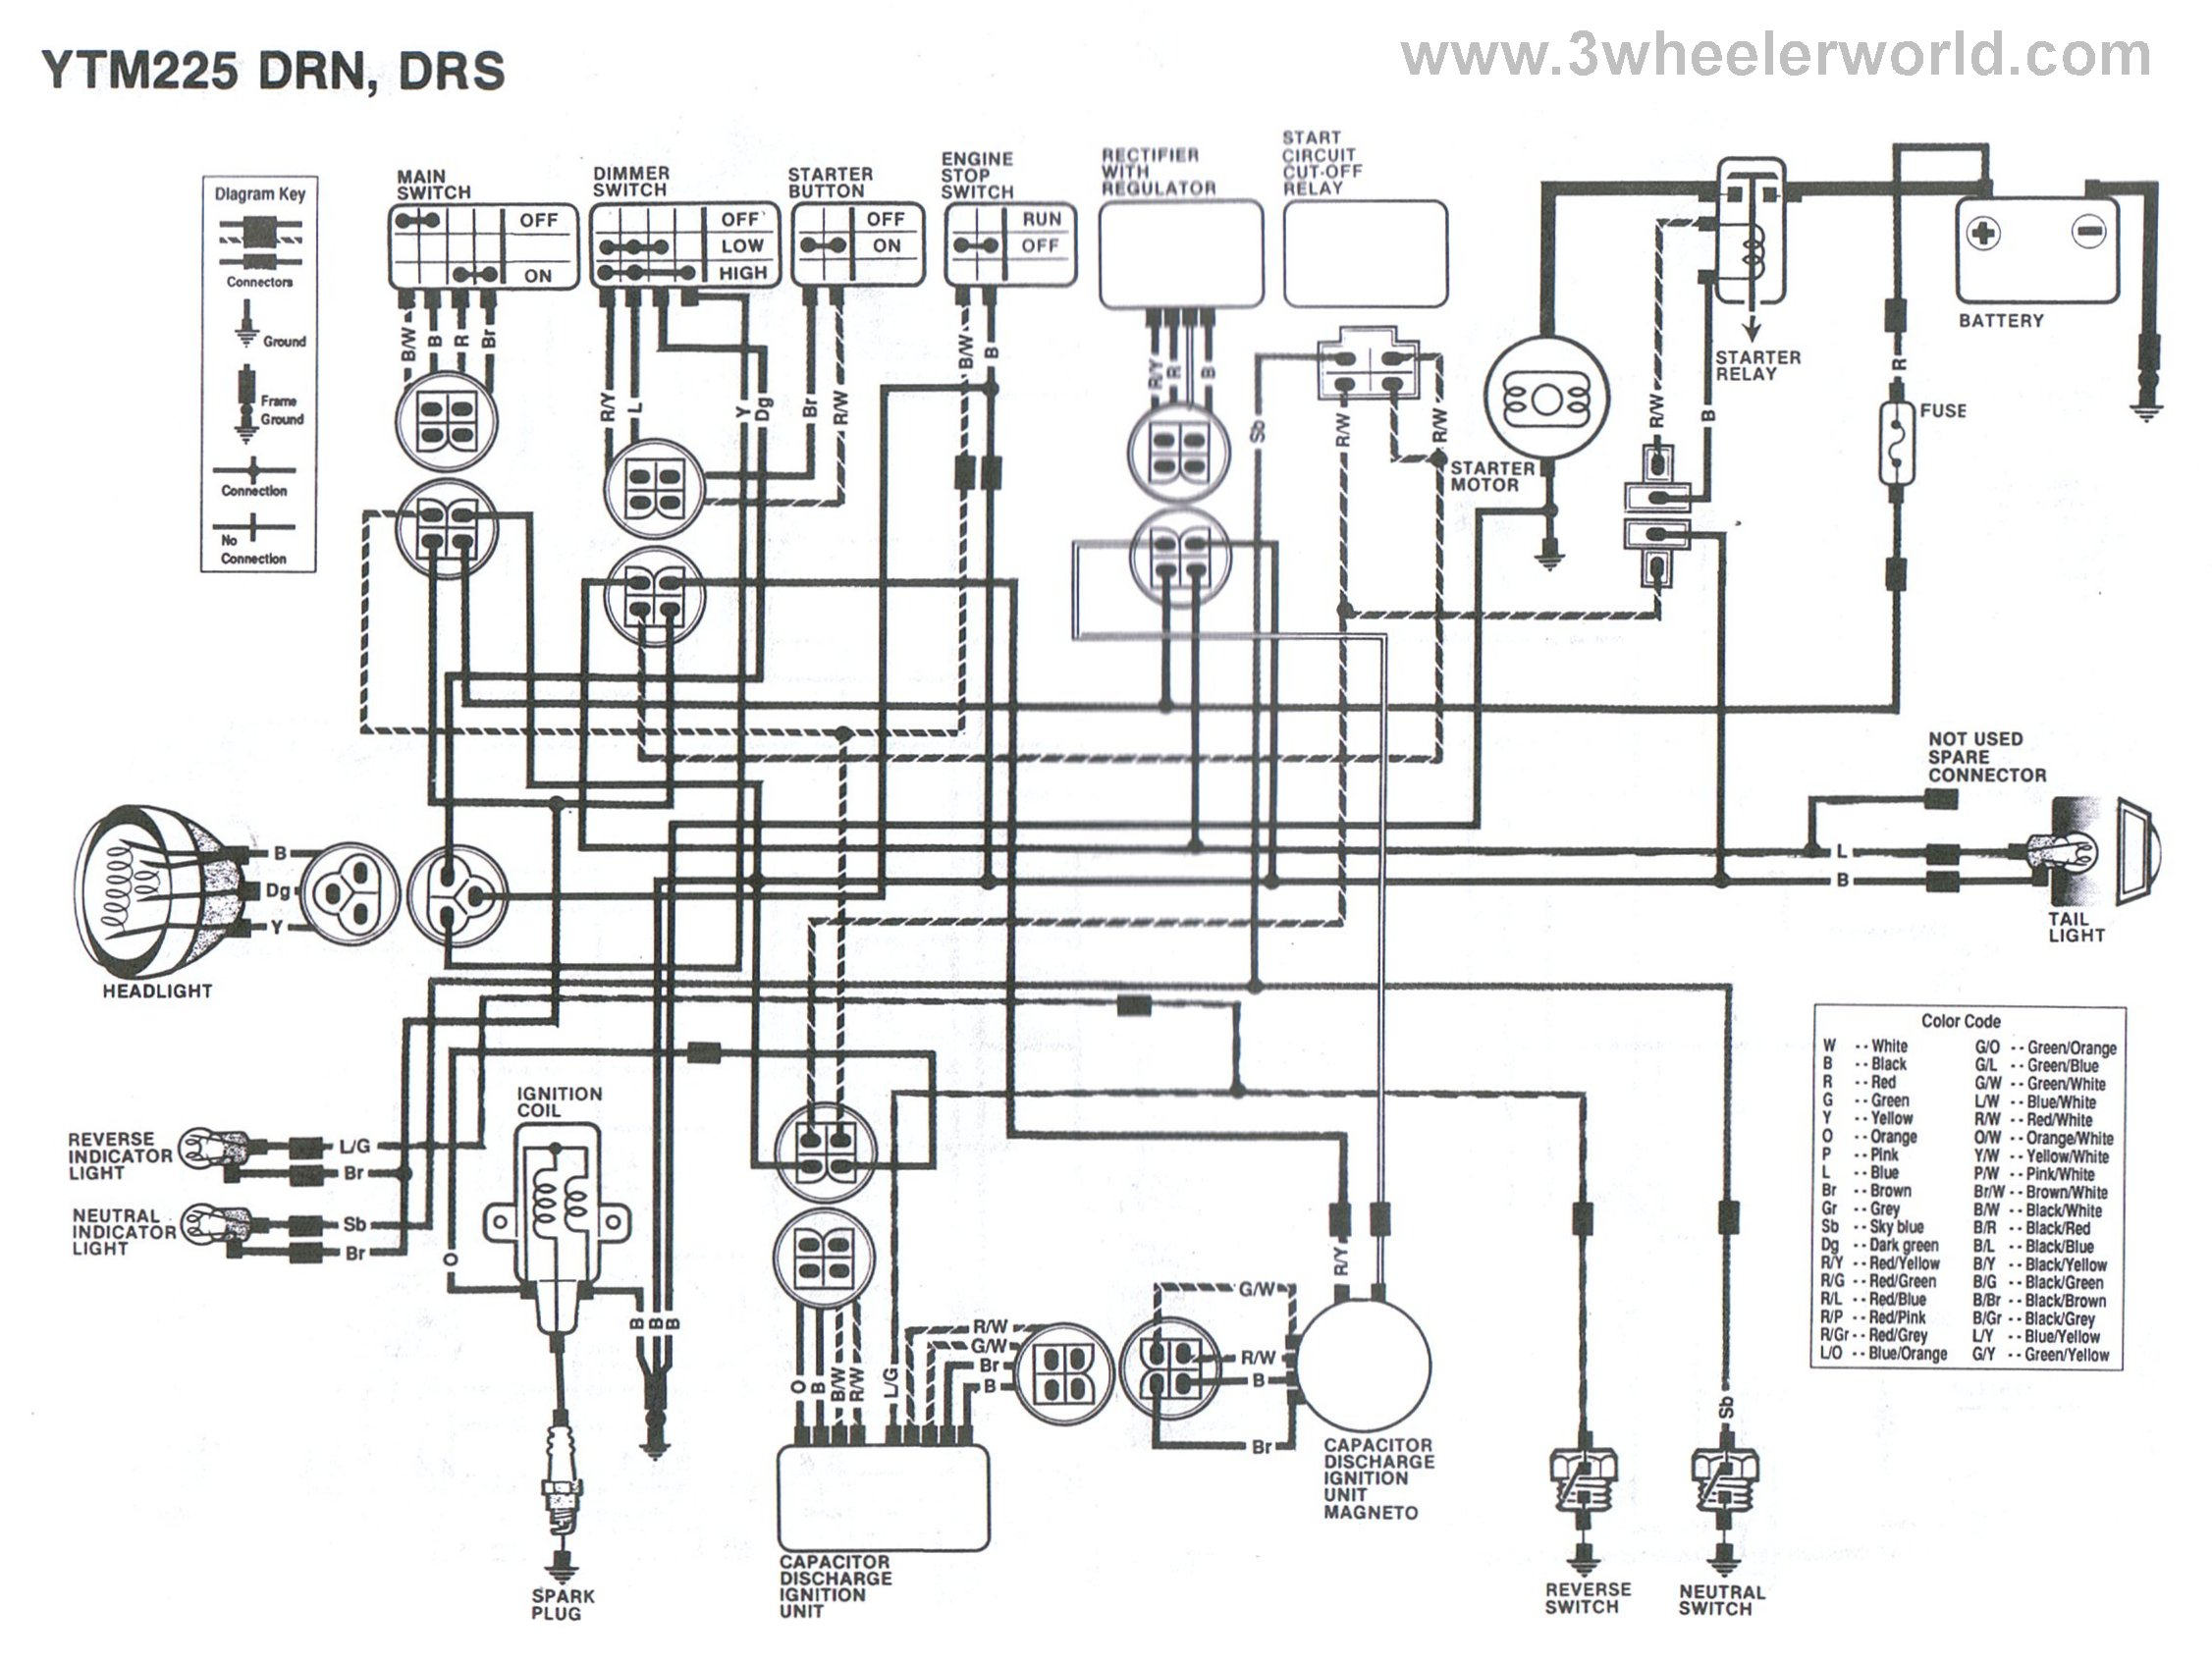 yamaha trx 850 wiring diagram we 2412  300 fourtrax wiring diagram yamaha warrior 350 carburetor  300 fourtrax wiring diagram yamaha